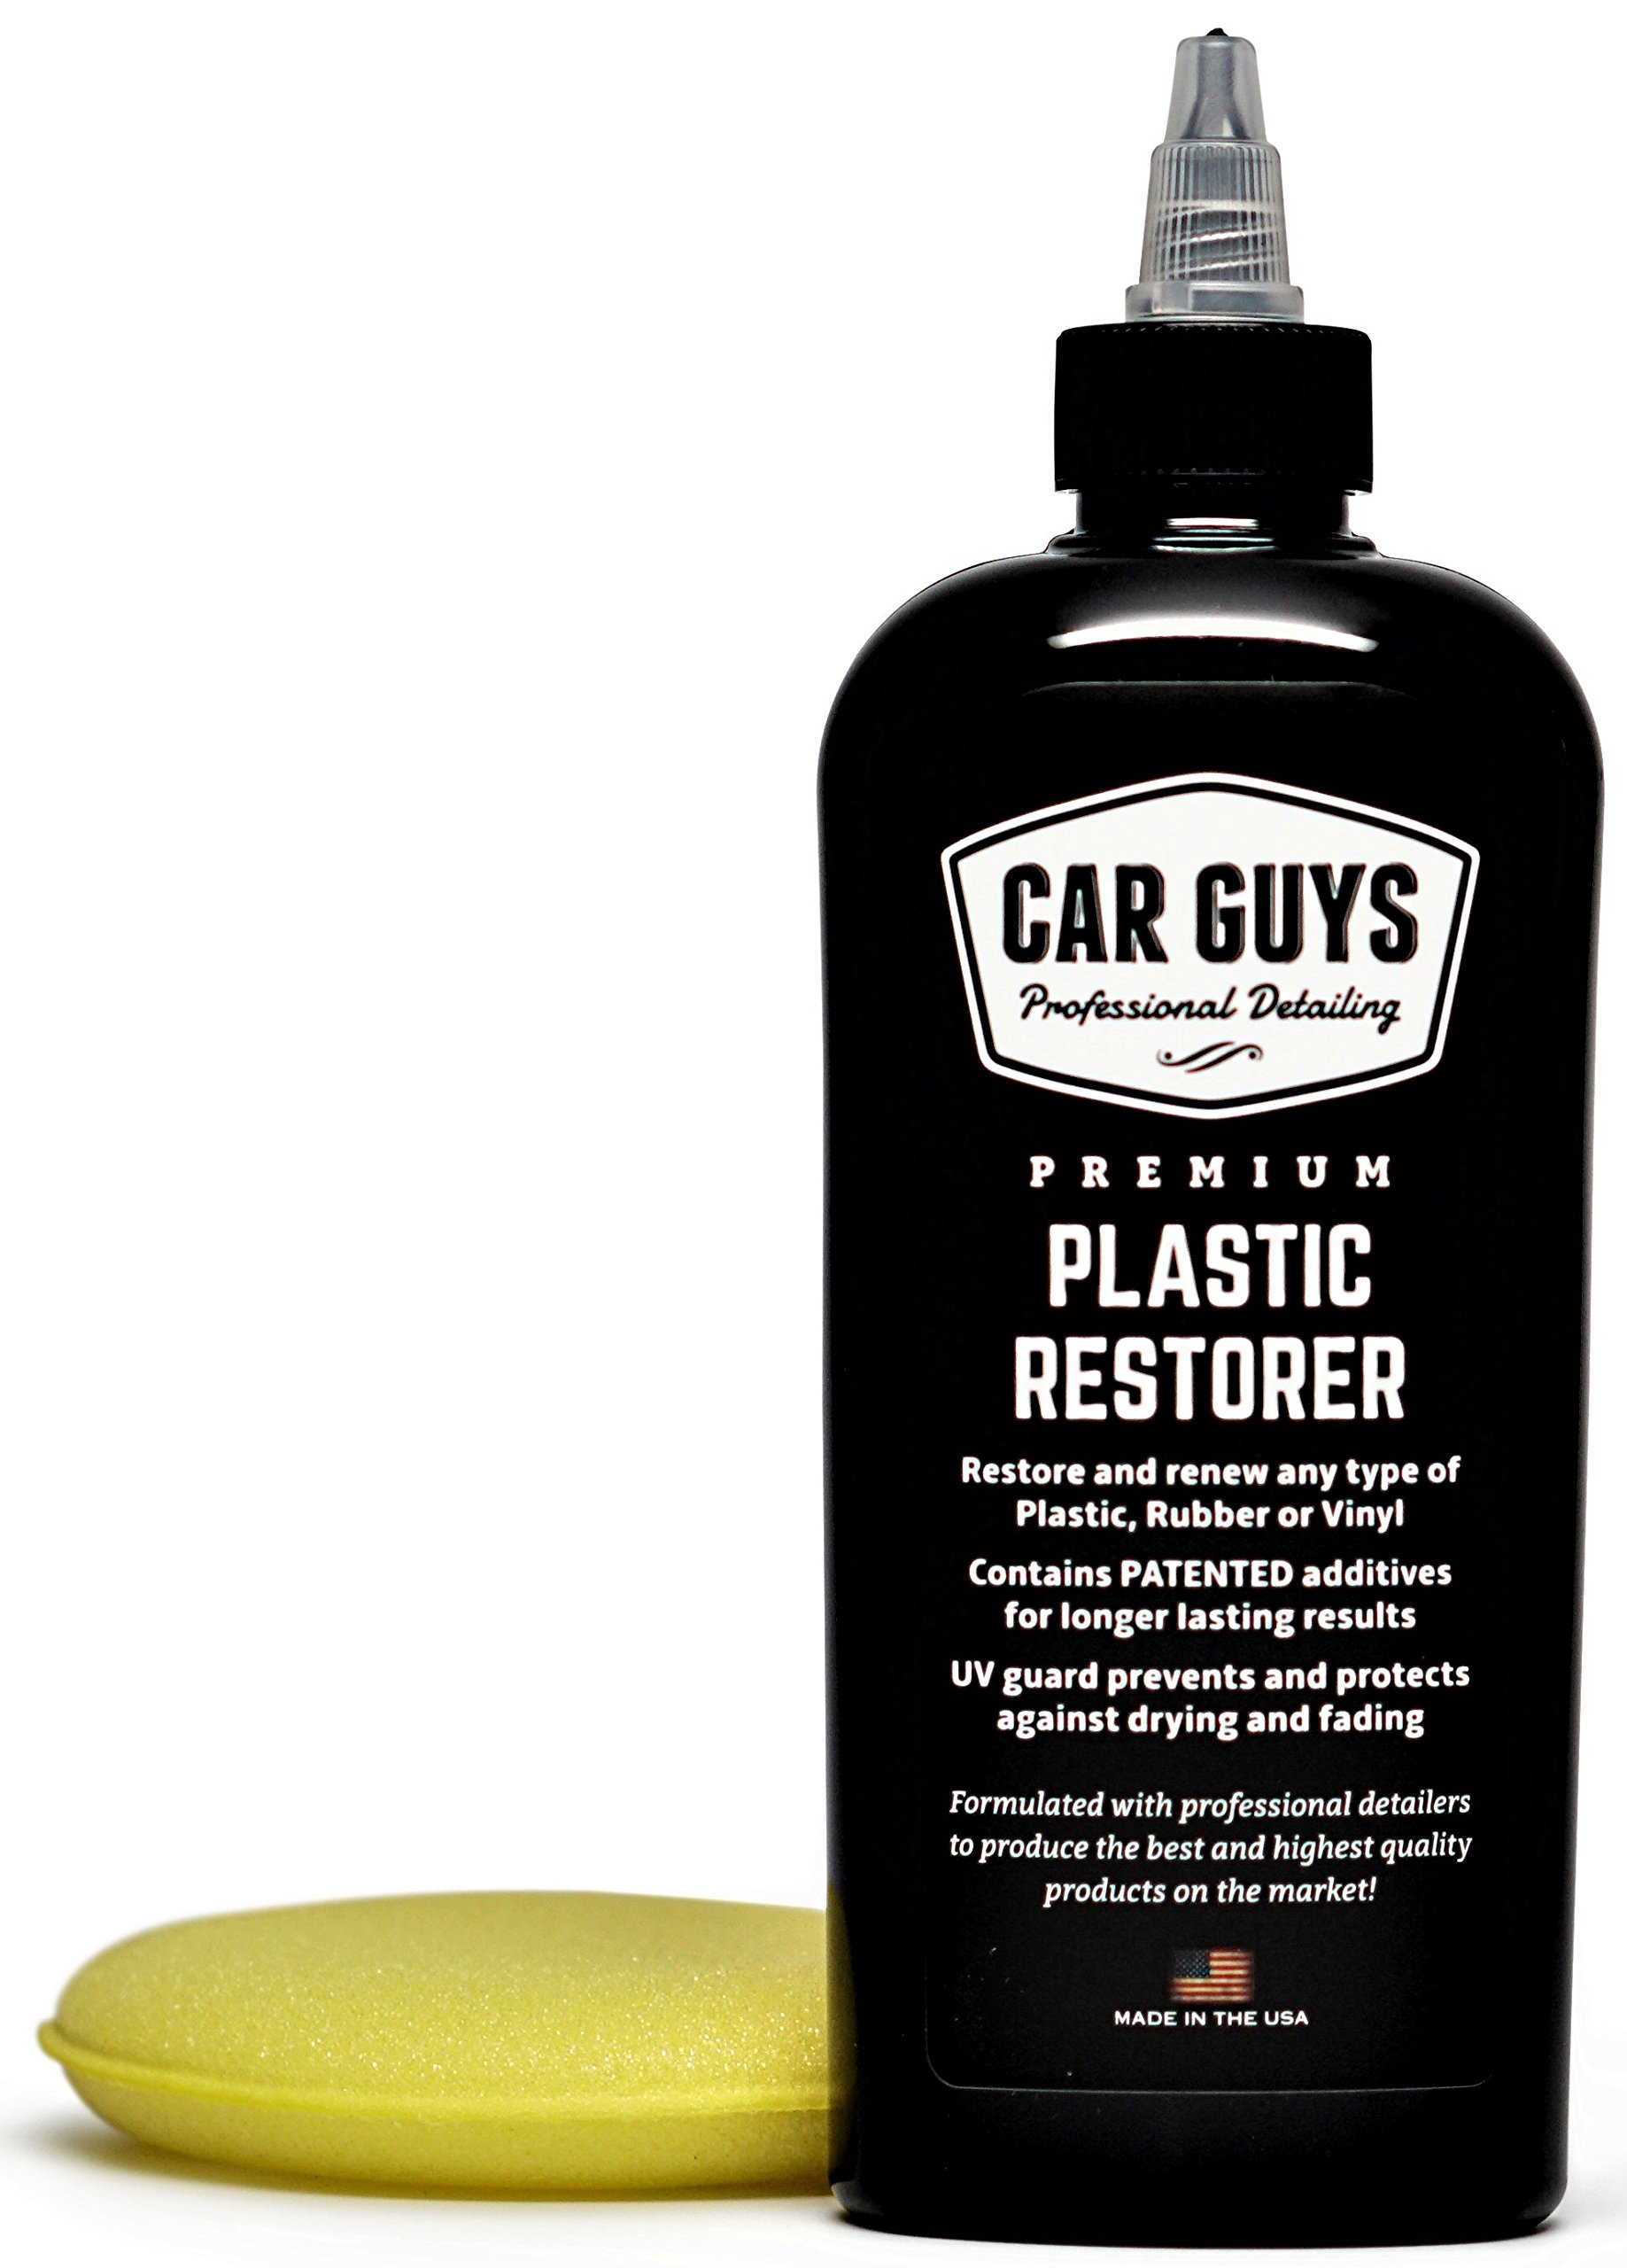 CarGuys Plastic Restorer - The Ultimate Solution for Bringing Rubber, Vinyl and Plastic Back to Life! - 8 oz Kit by CarGuys